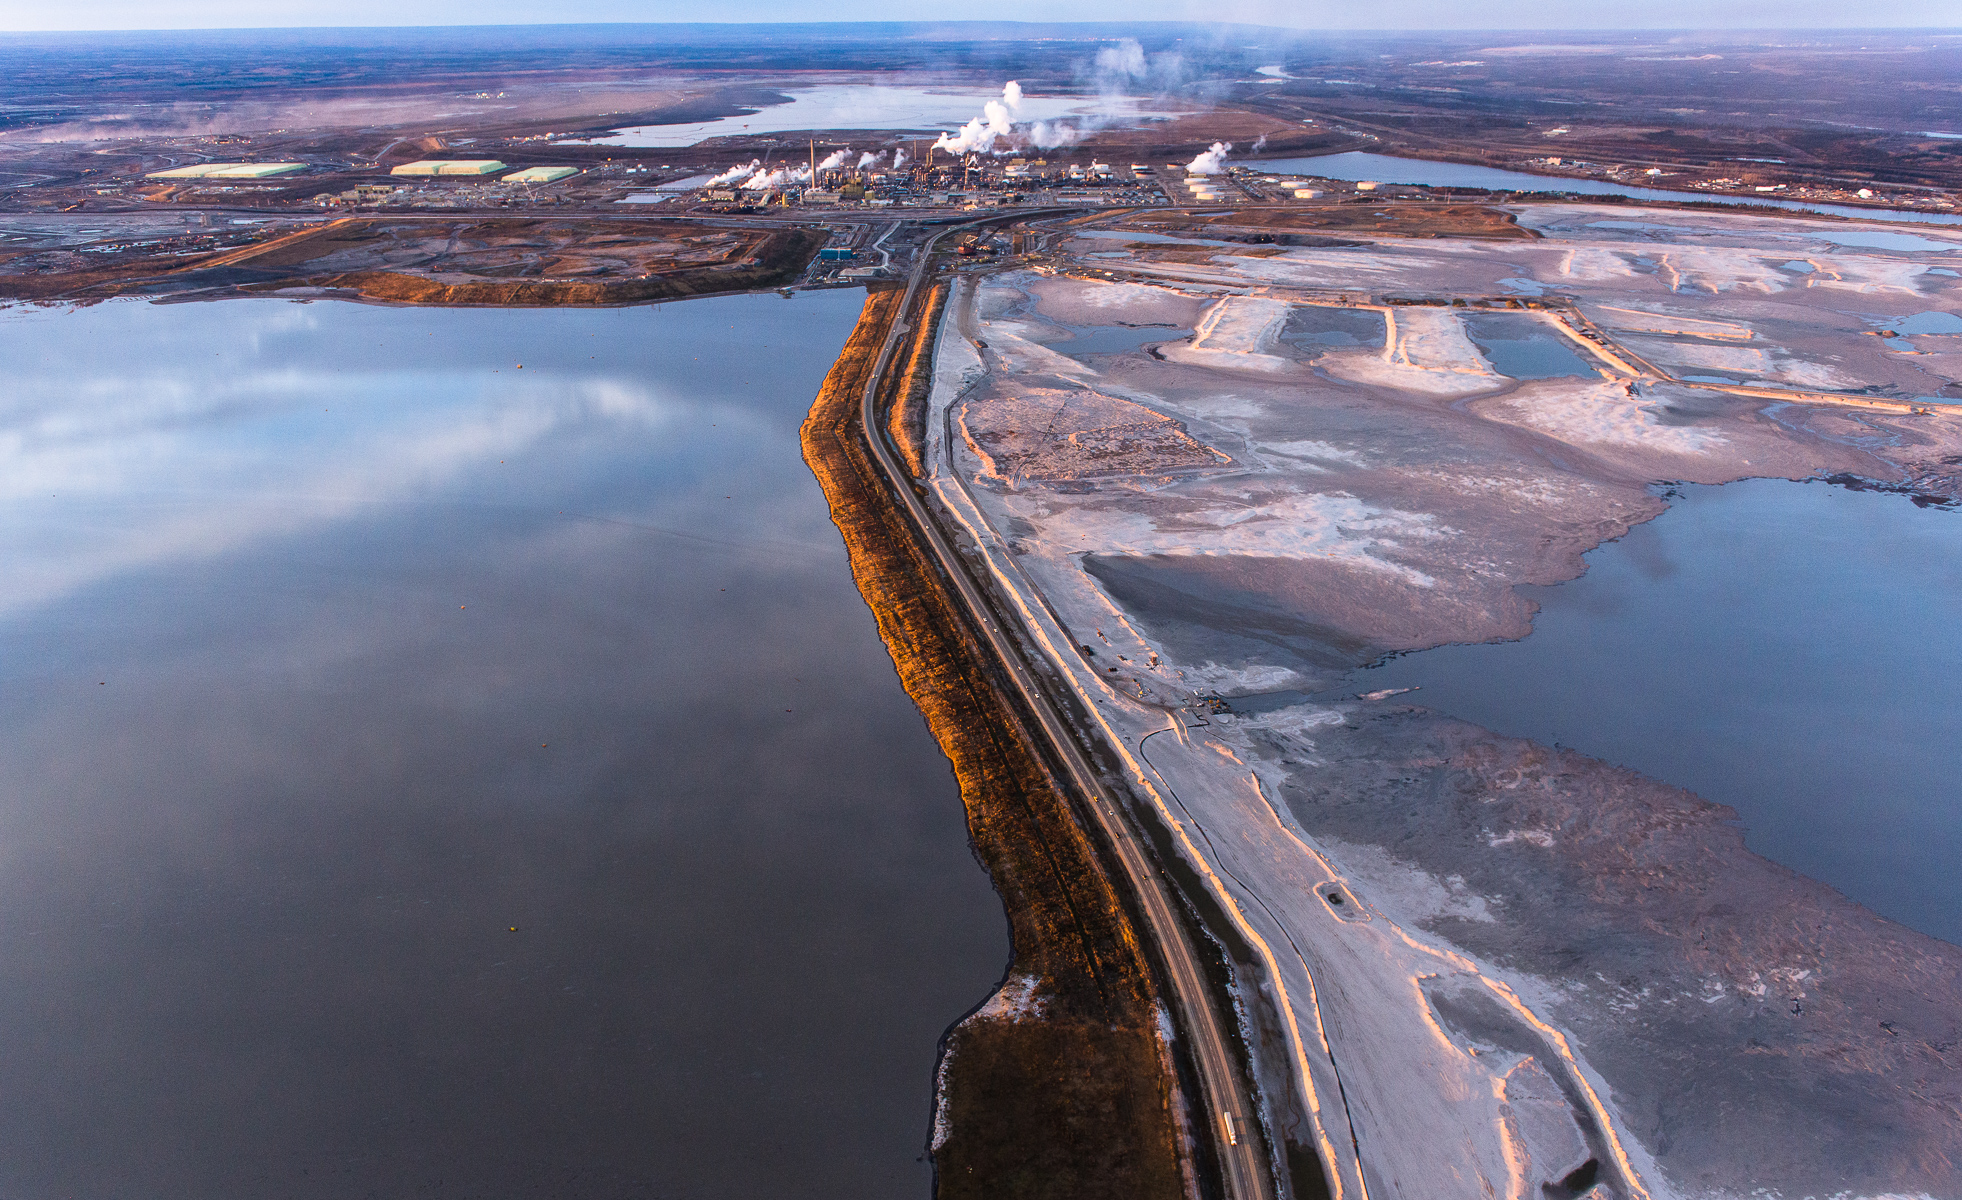 """Syncrude Upgrader, mines, tailings ponds, and Athabasca River. Alberta Oil/Tar Sands, Northern Alberta, Canada. Highway 63, or as it is known to locals as the highway to Hell, cuts through two tailings ponds as head towards an upgrader and into the heart of the Tar Sands.Fine Art Print Price ListOpen and Larger Edition Prints. These are produced to the same high standards as our limited edition prints and offer collectors a more affordable way to get to know our work.Prints  are limited to an edition of 50 in each size above 20"""" X 24"""". Prices are for prints only and do not include tax or shipping.All prices are in US dollars.12""""x18"""" $350.16""""x24""""        $650.20""""x30"""" $1000.24""""x36""""        $1500. 30""""x45"""" $2300.40""""x60""""      $3600"""